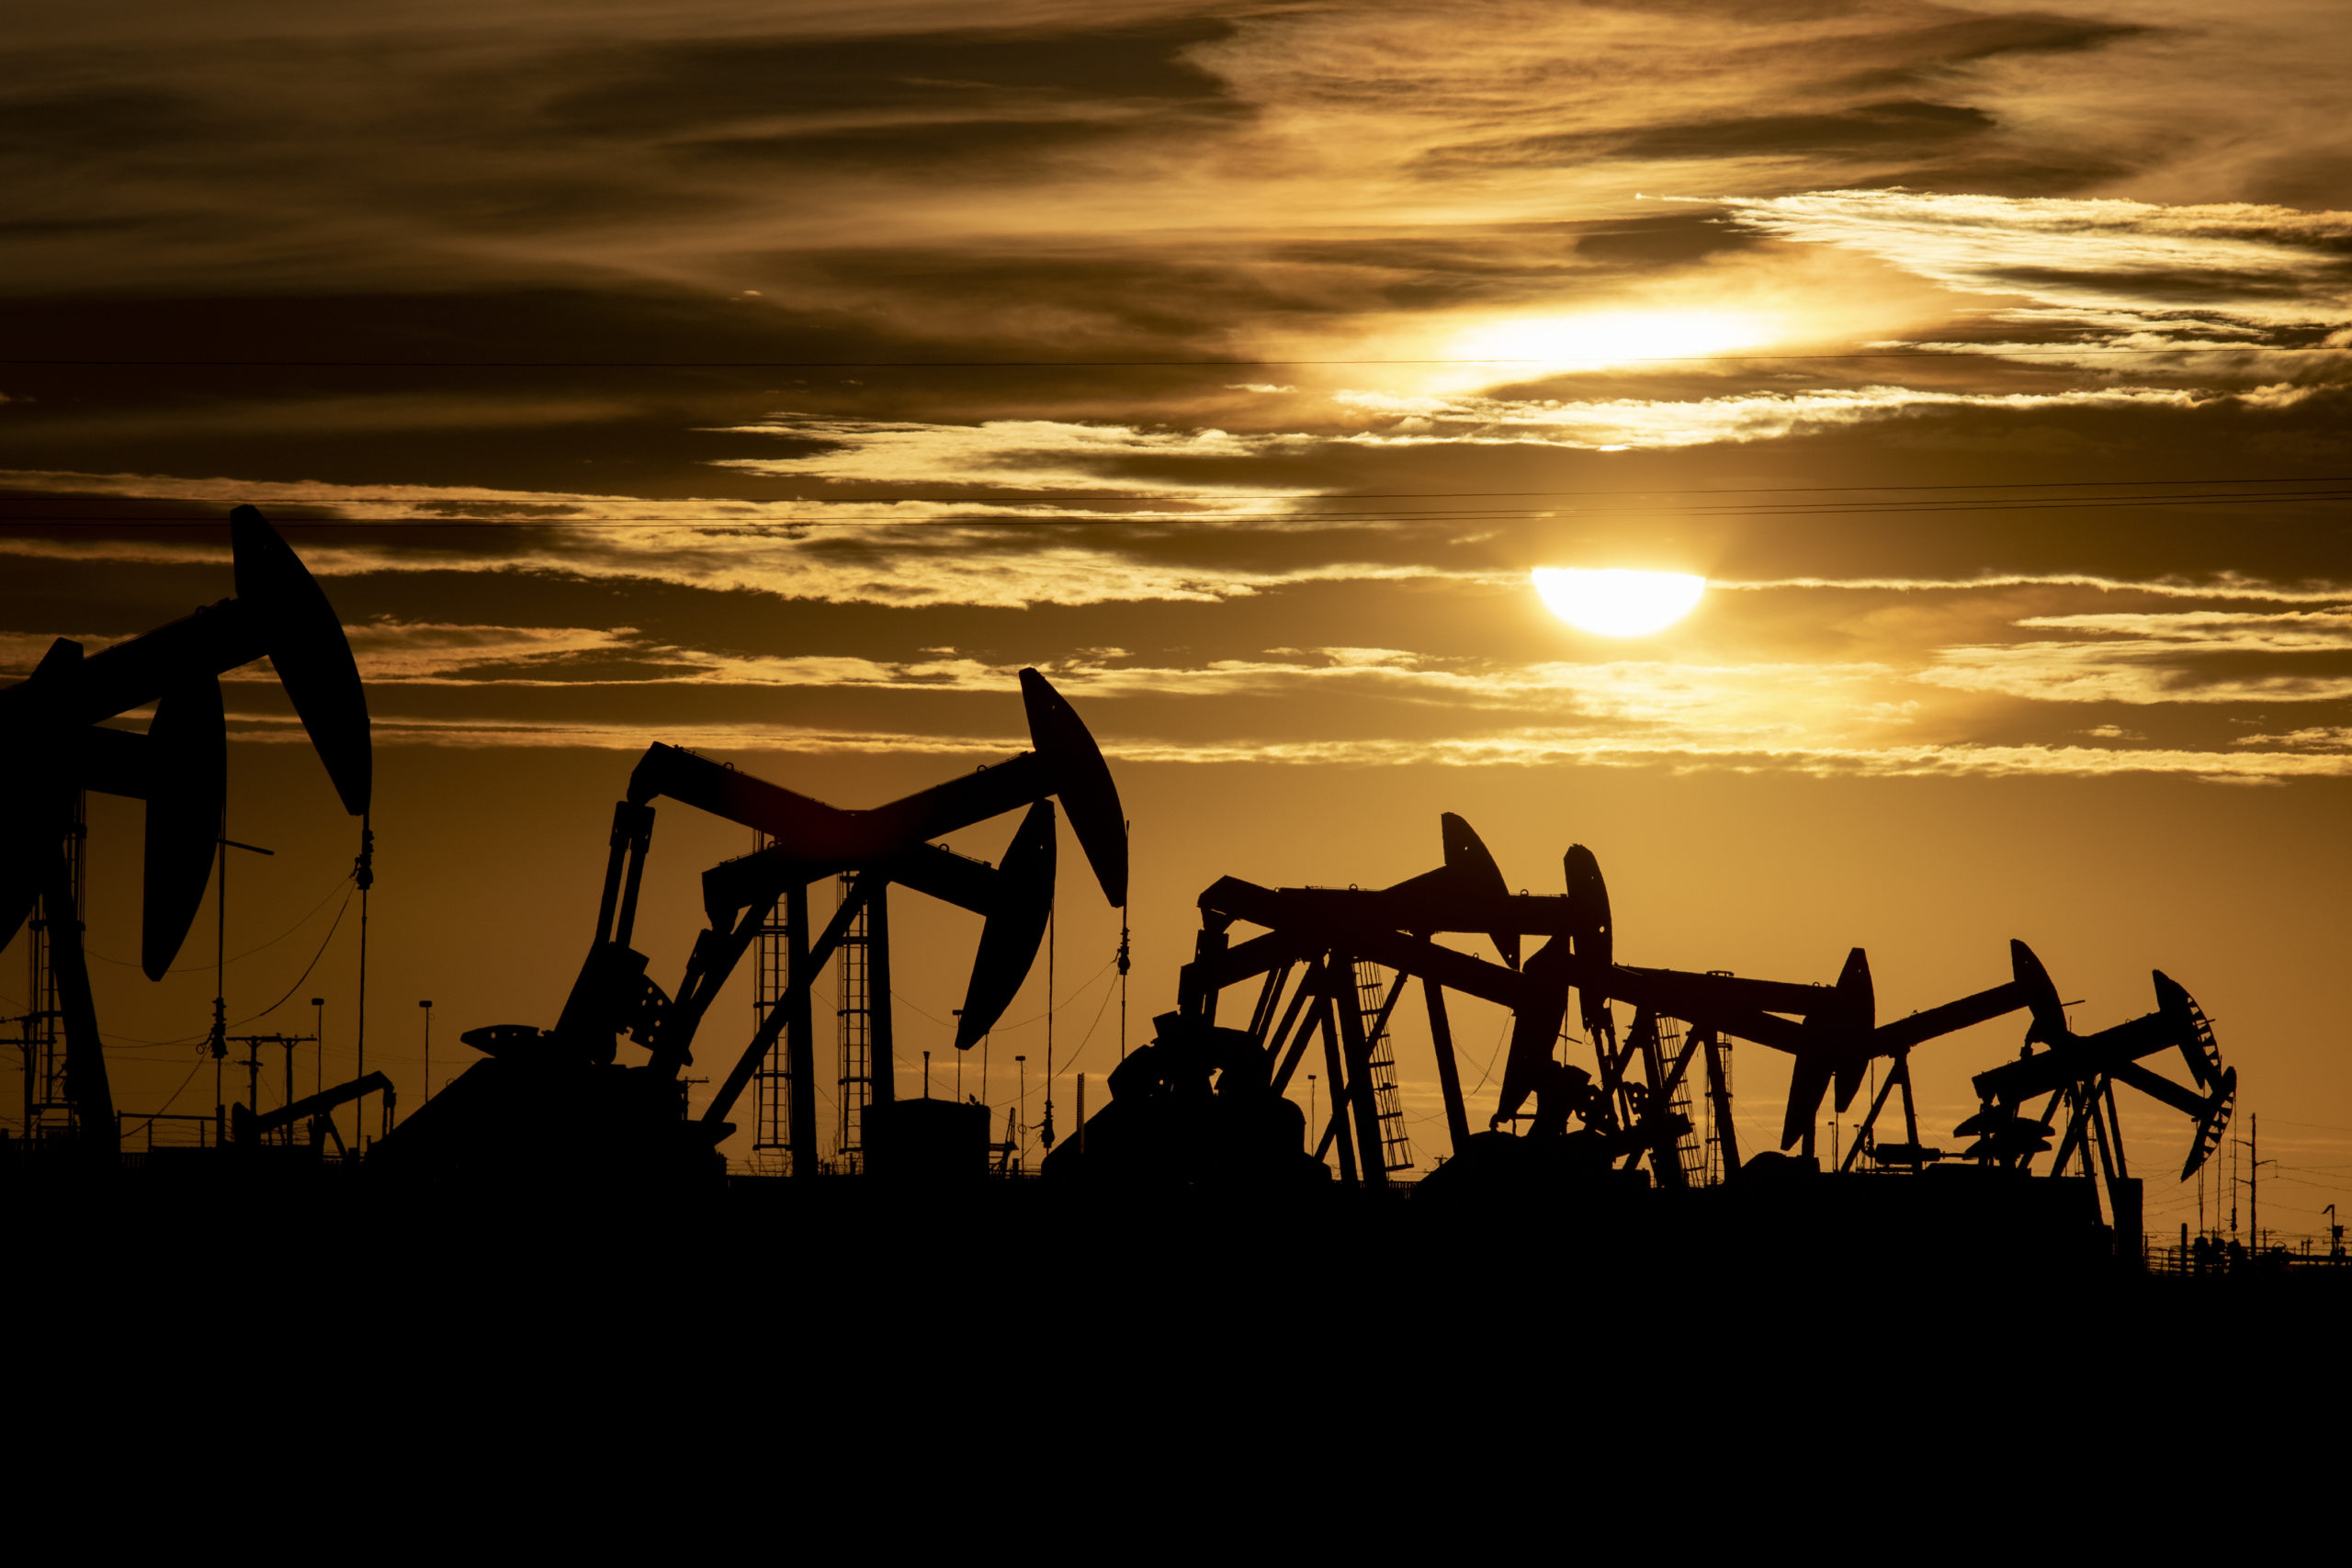 Dying Oil Companies' Parting Gift: Millions in Clean Up Costs